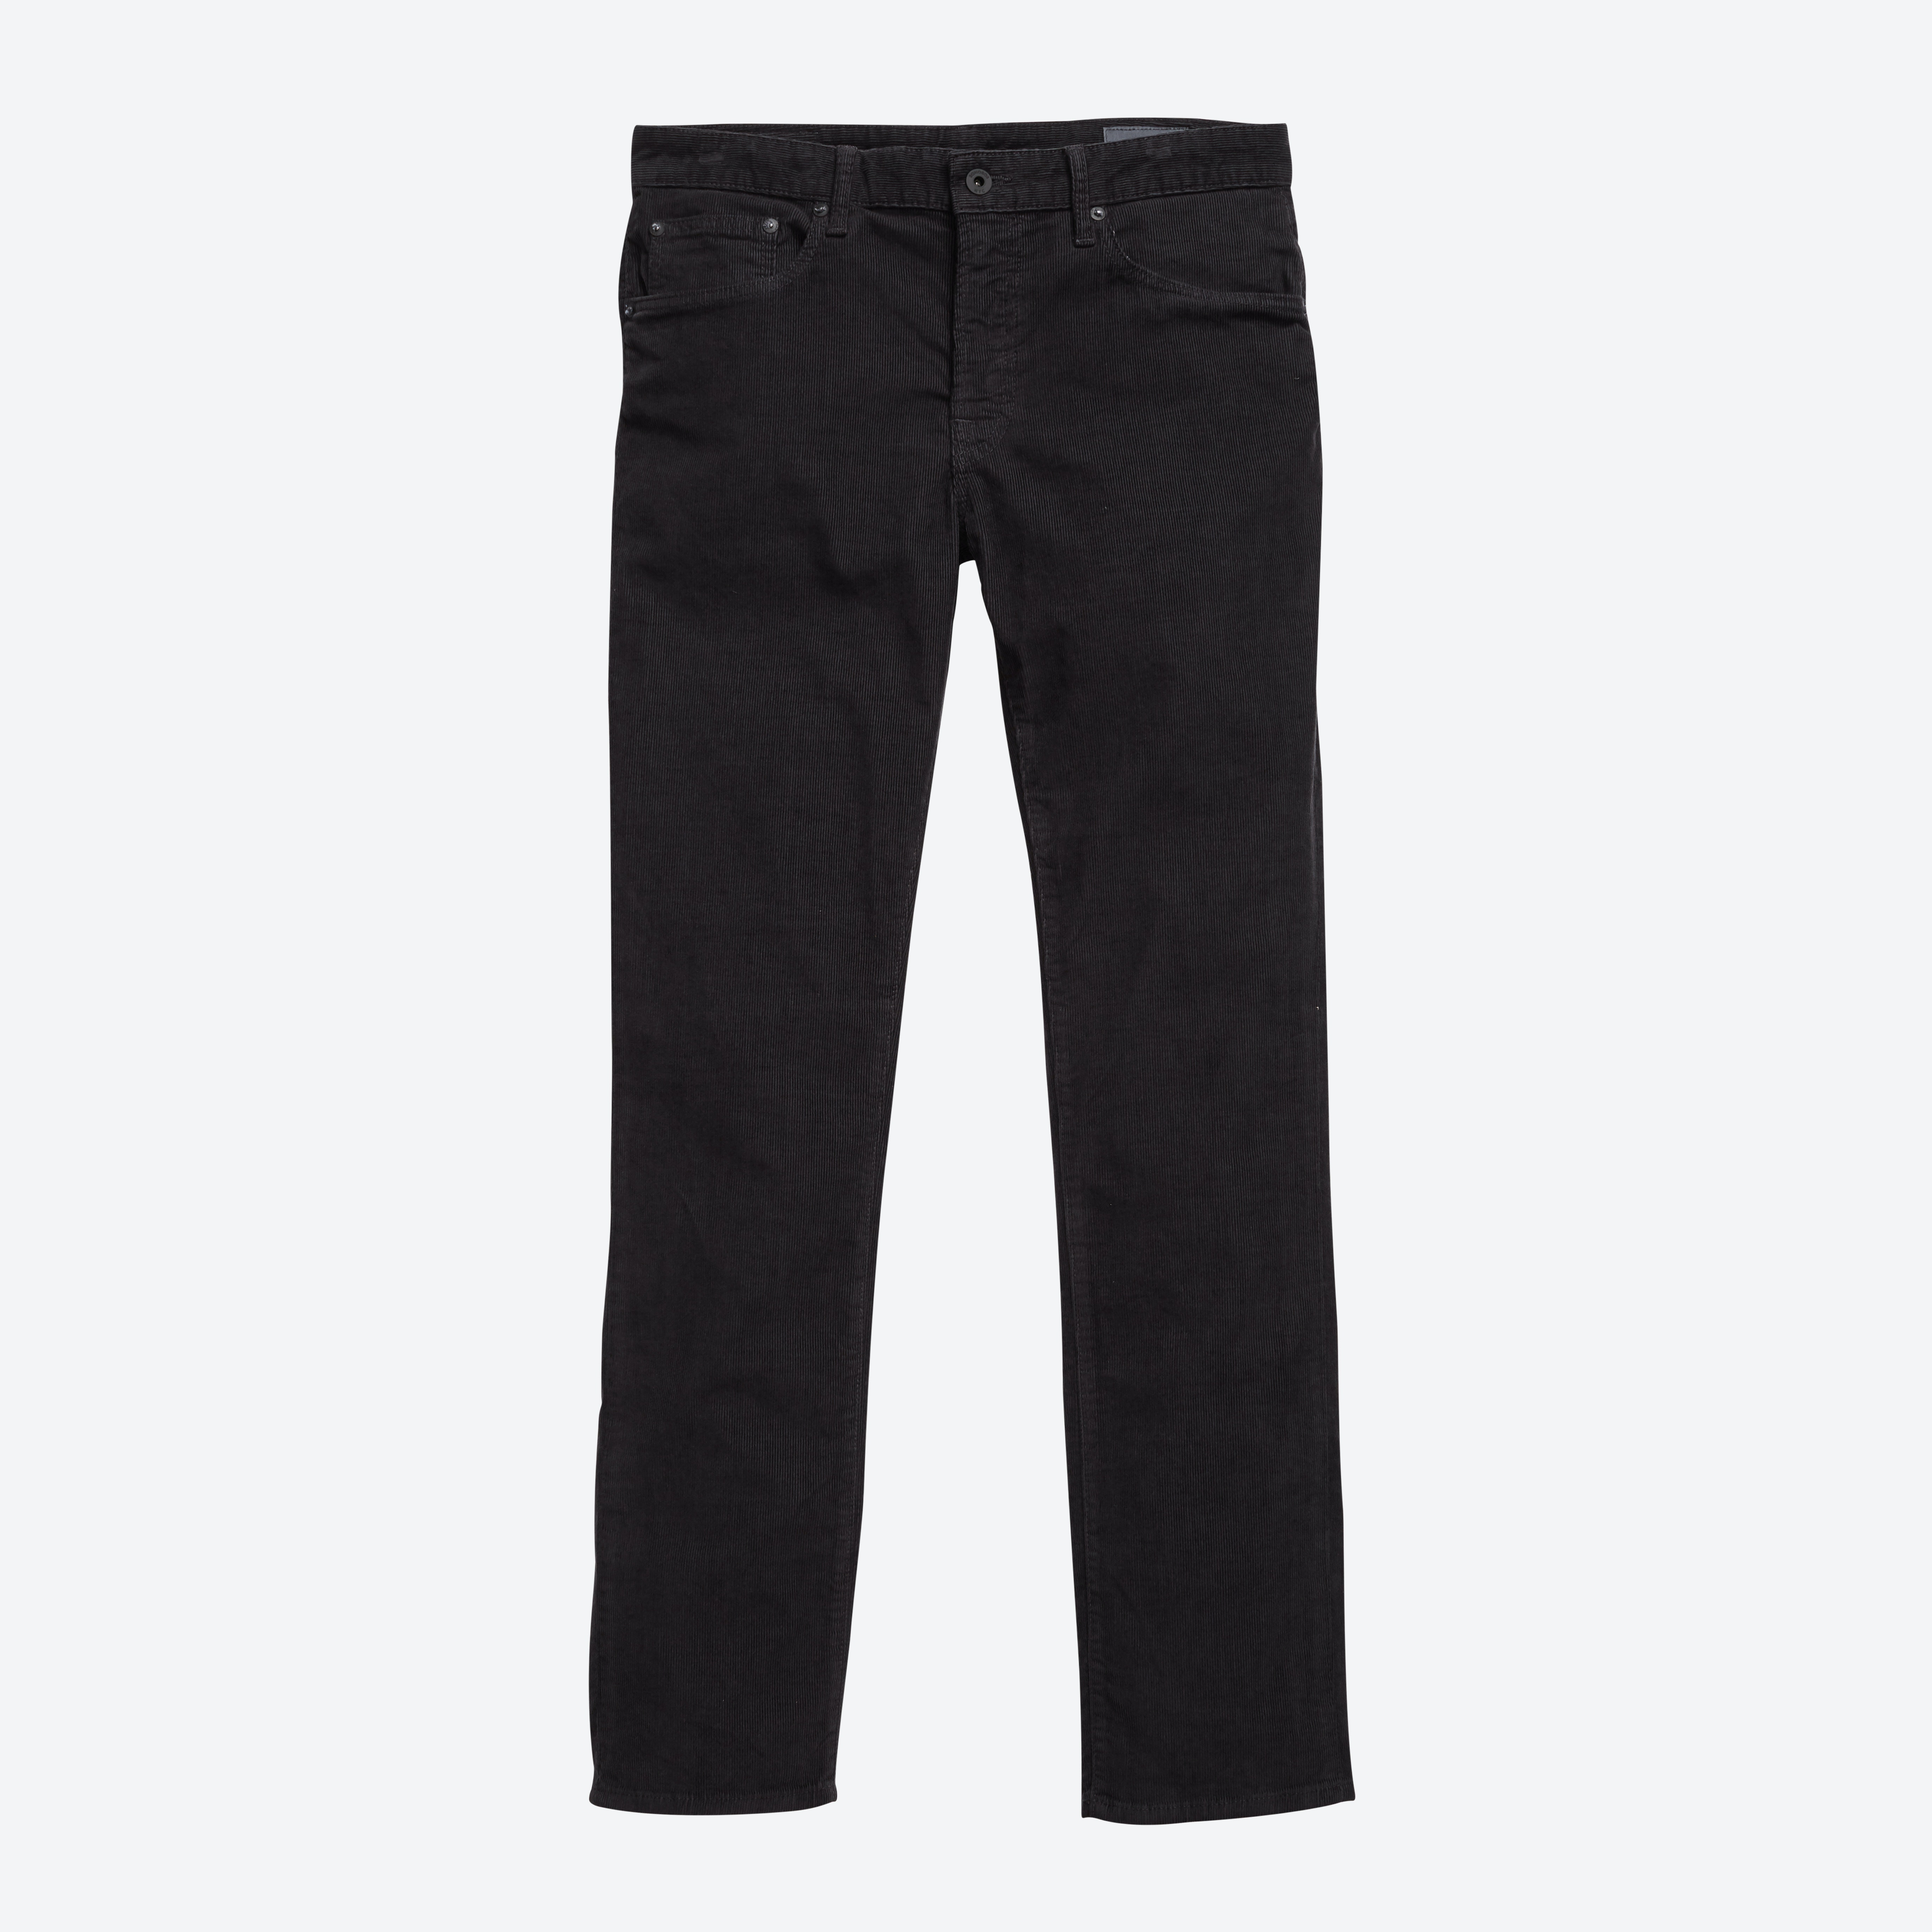 5-Pocket French Cords